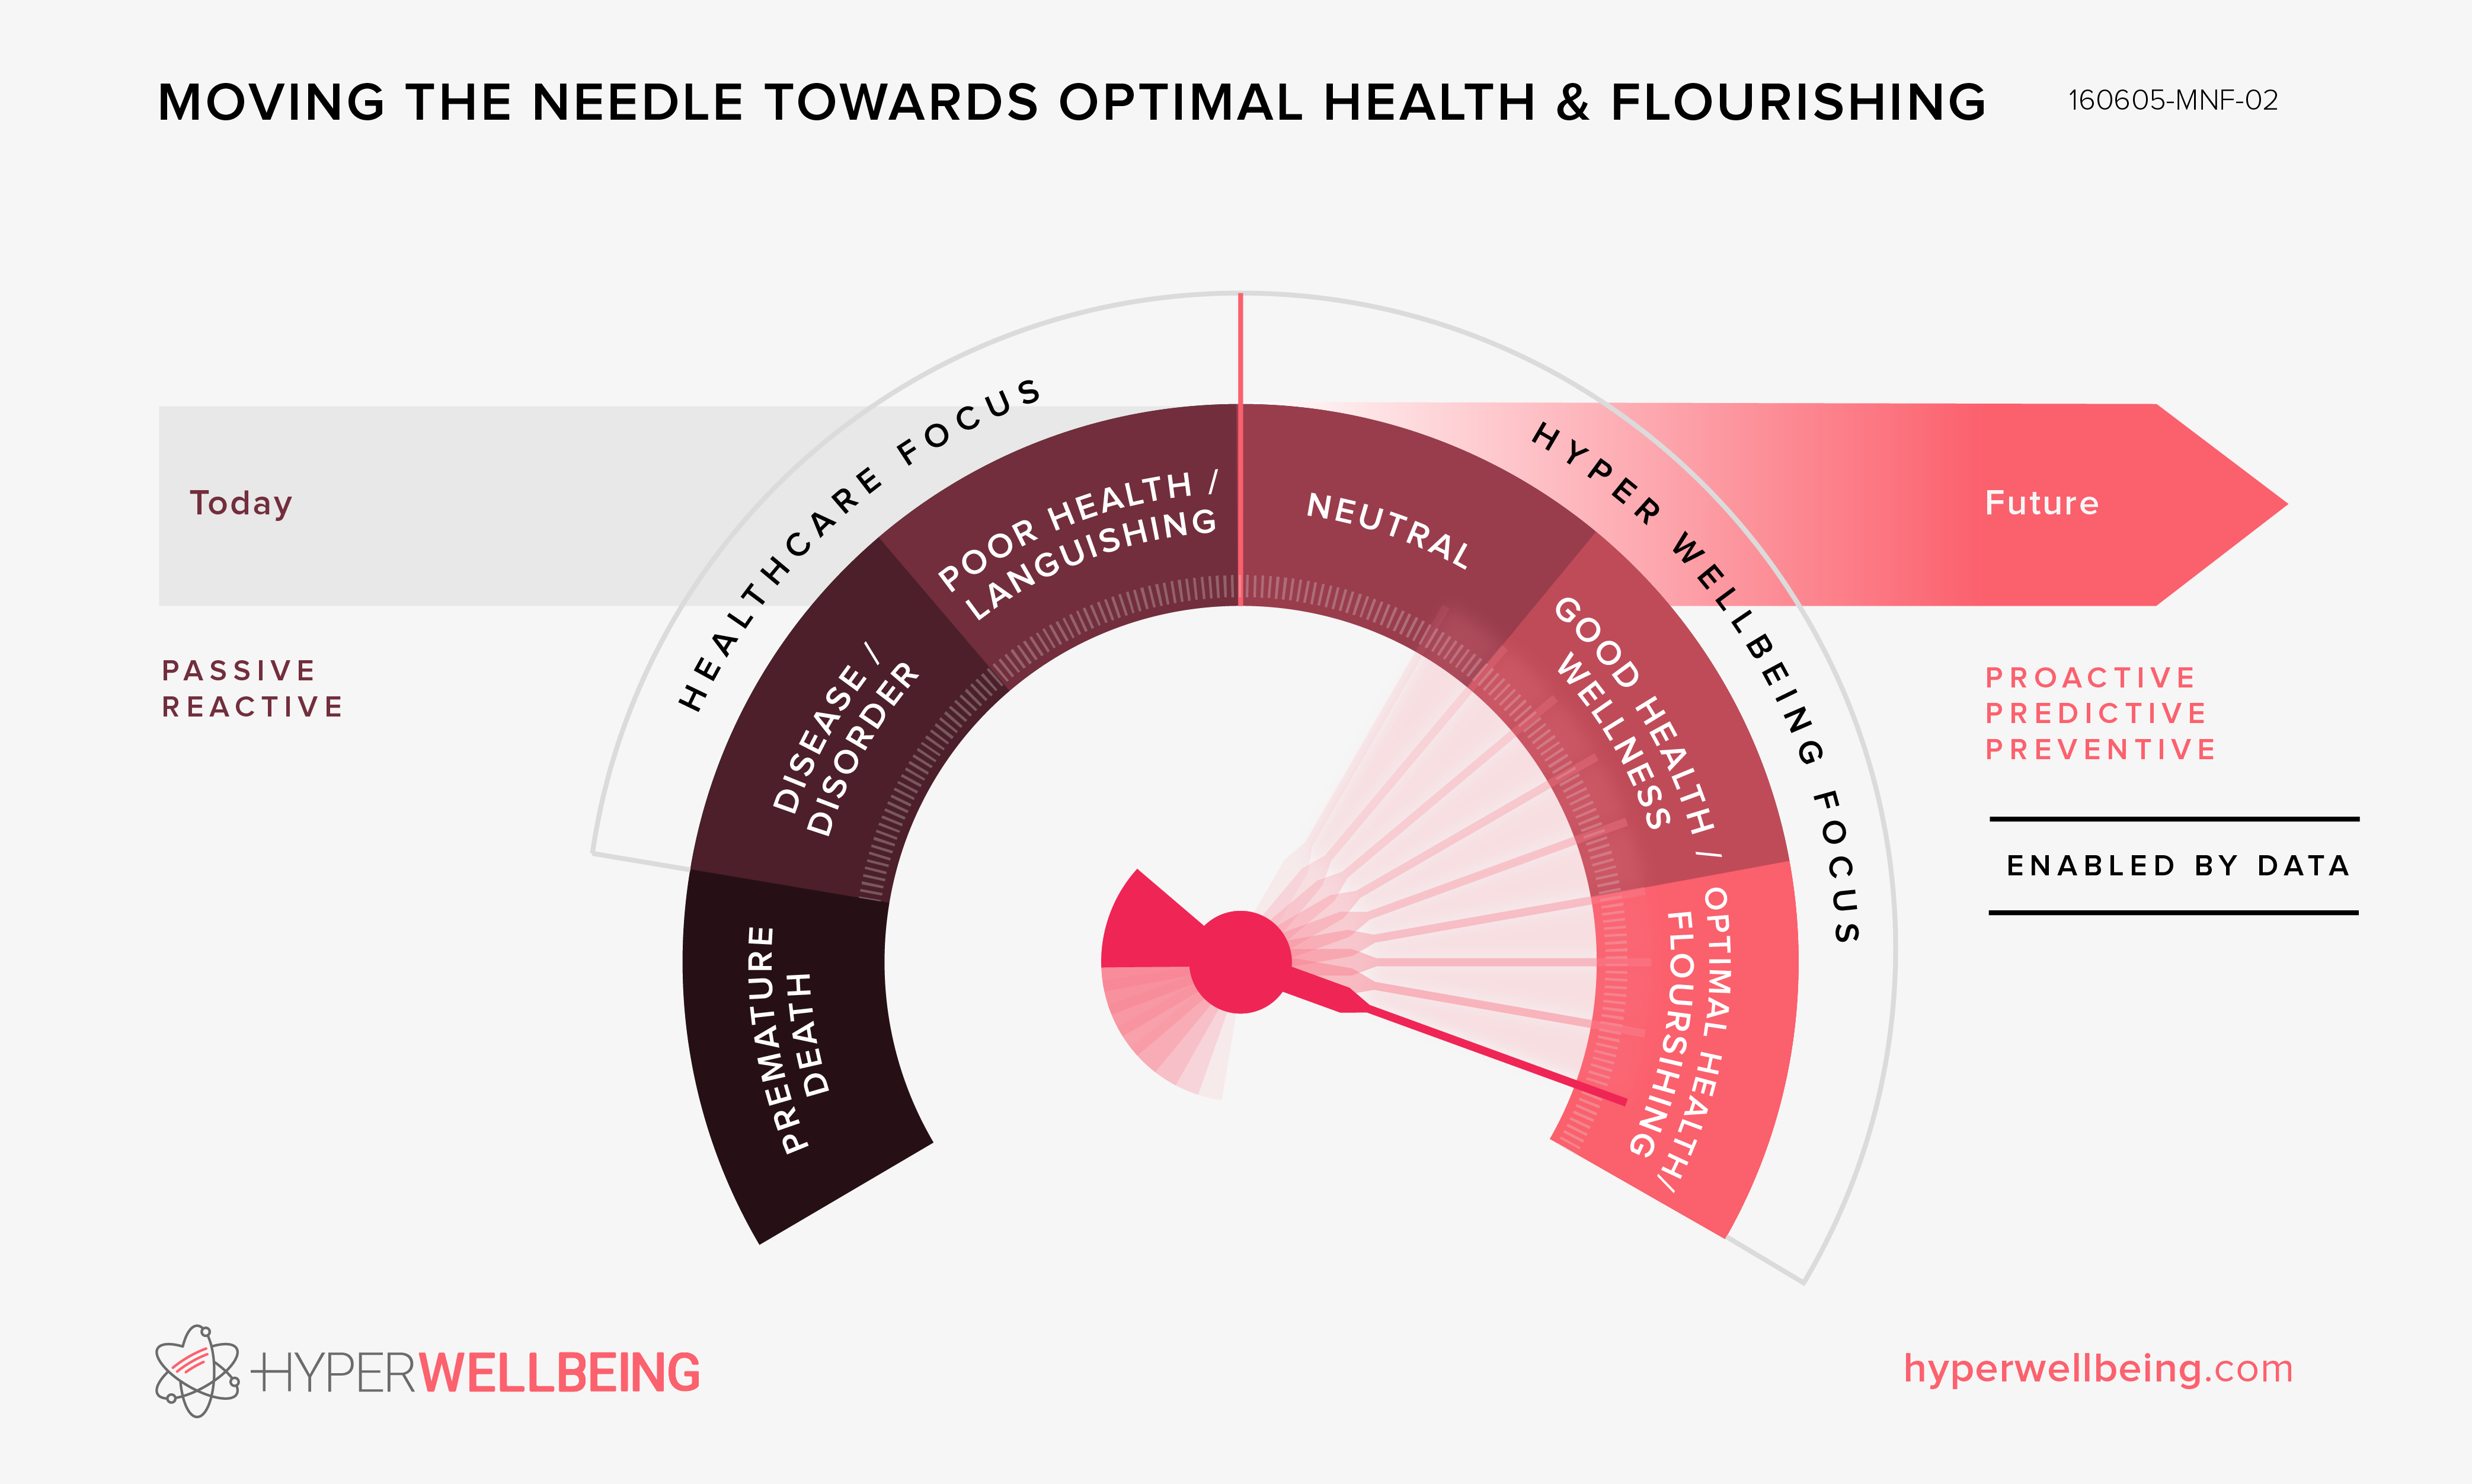 Moving the Needle Towards Optimal Health & Flourishing